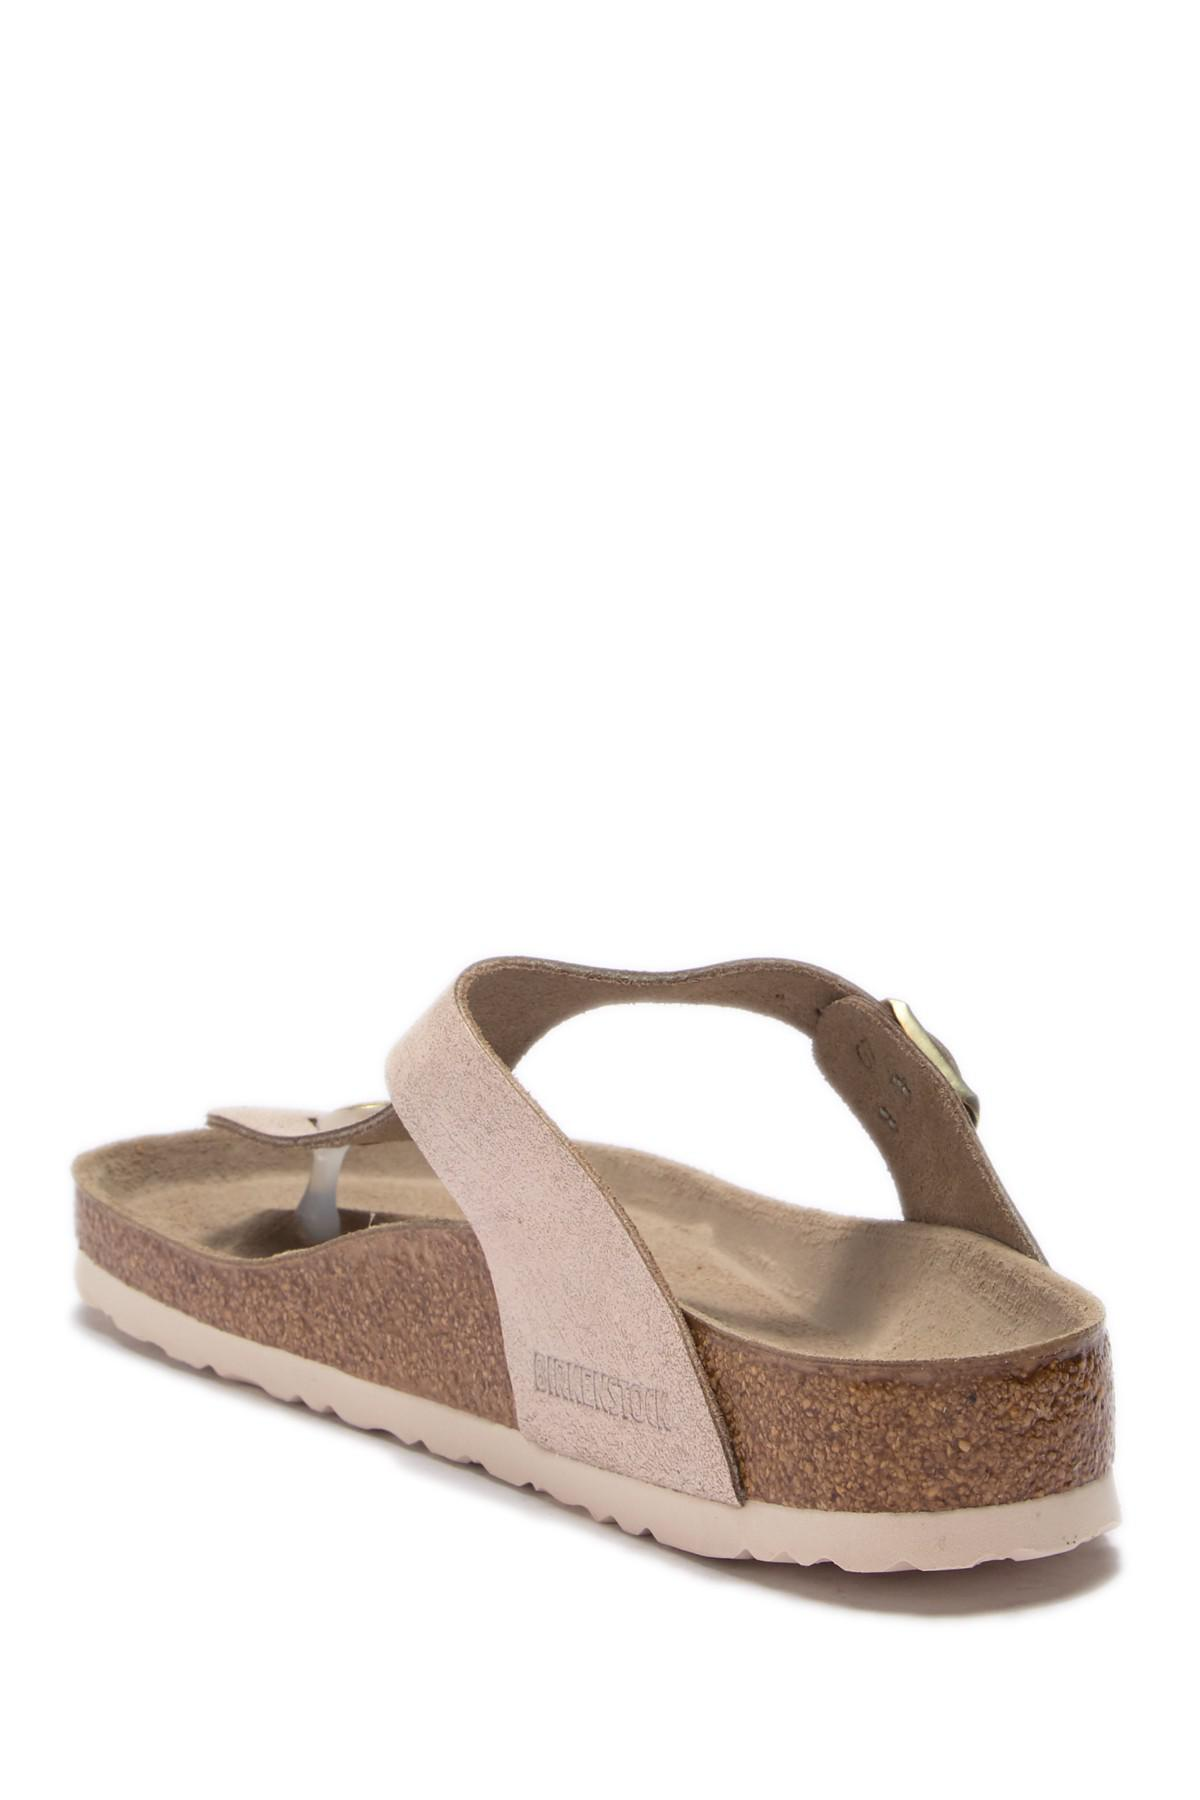 6a023a7c6233 Lyst - Birkenstock Gizeh Thong Sandal - Discontinued in Pink